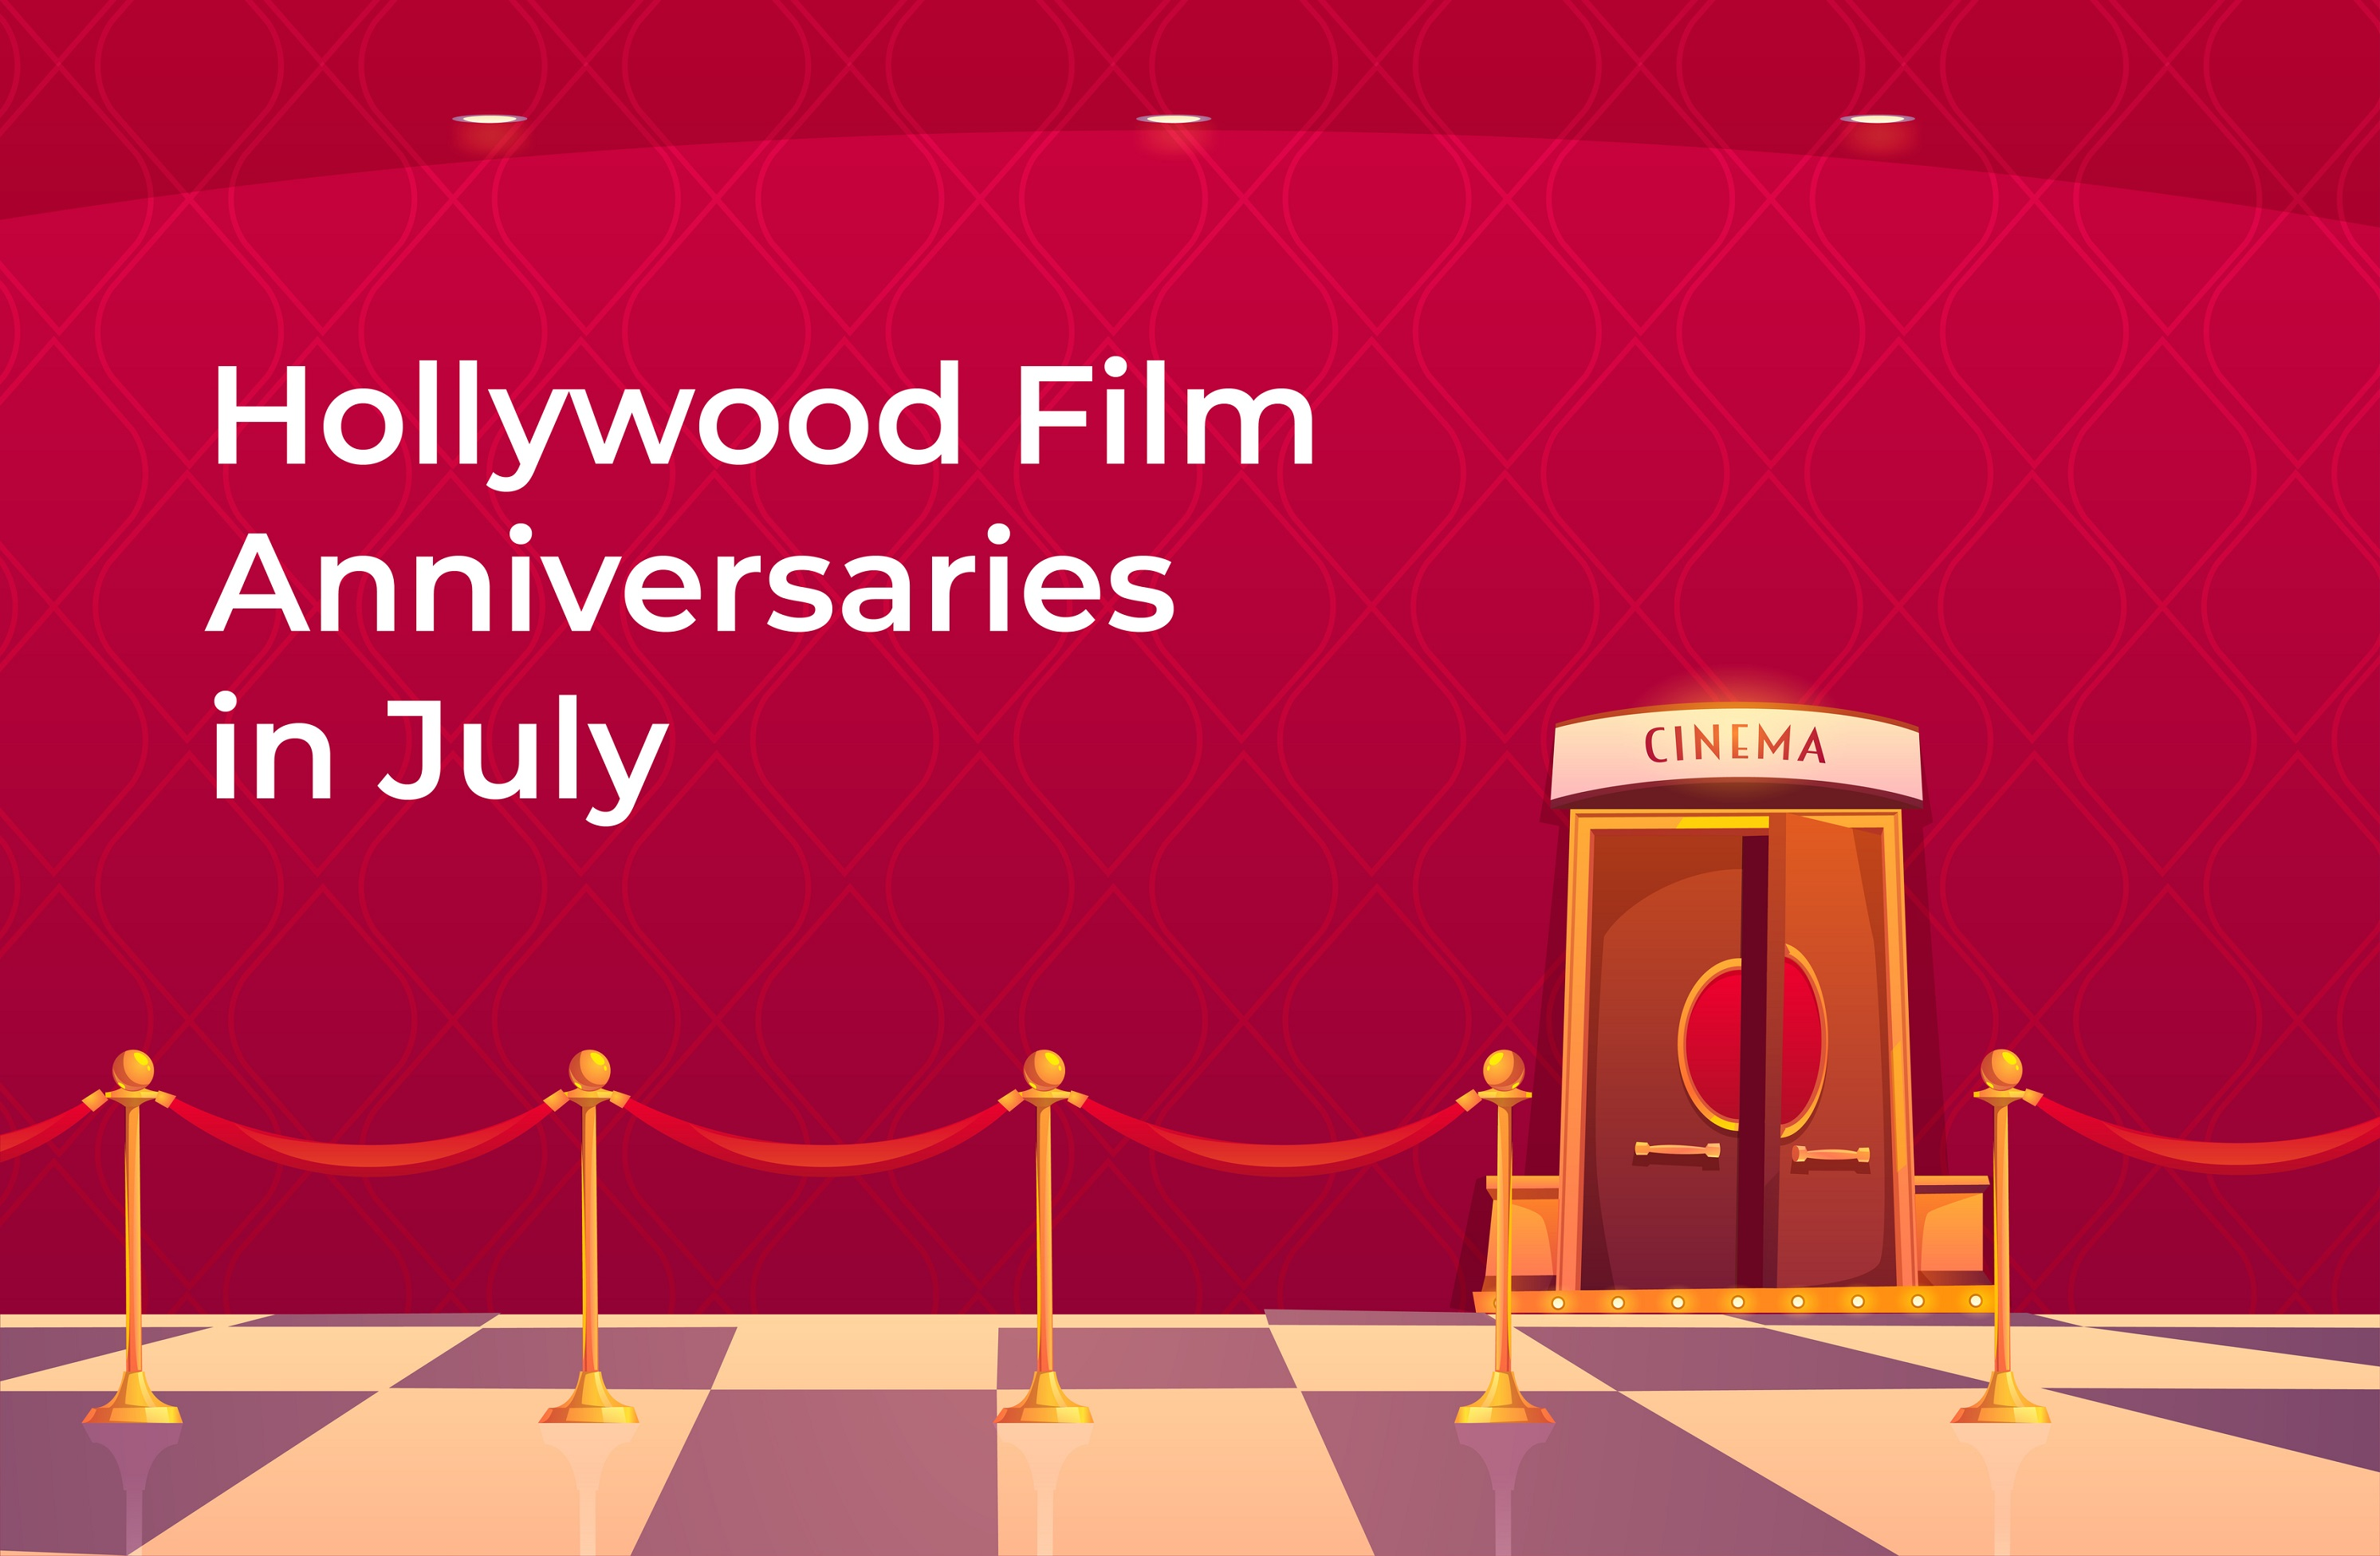 Hollywood Movies Celebrating their Anniversary in July